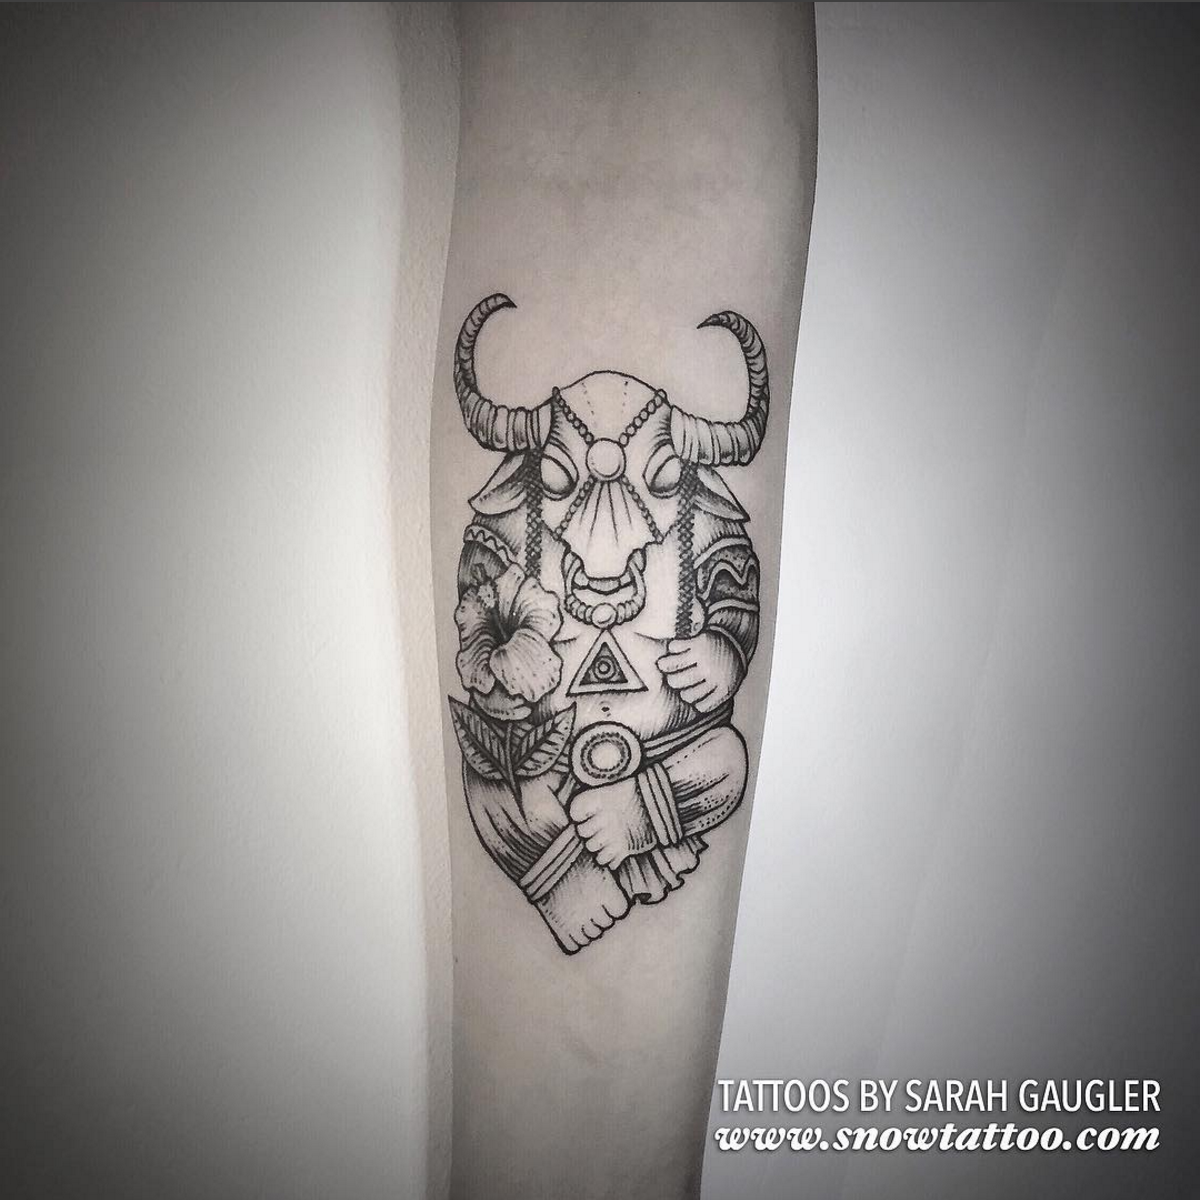 Cusotm+Carabao+Tattoo+Line+Art+Original+Flash+Tattoo+by+Sarah+Gaugler+at+Snow+Tattoo+New+York+NYC.jpg